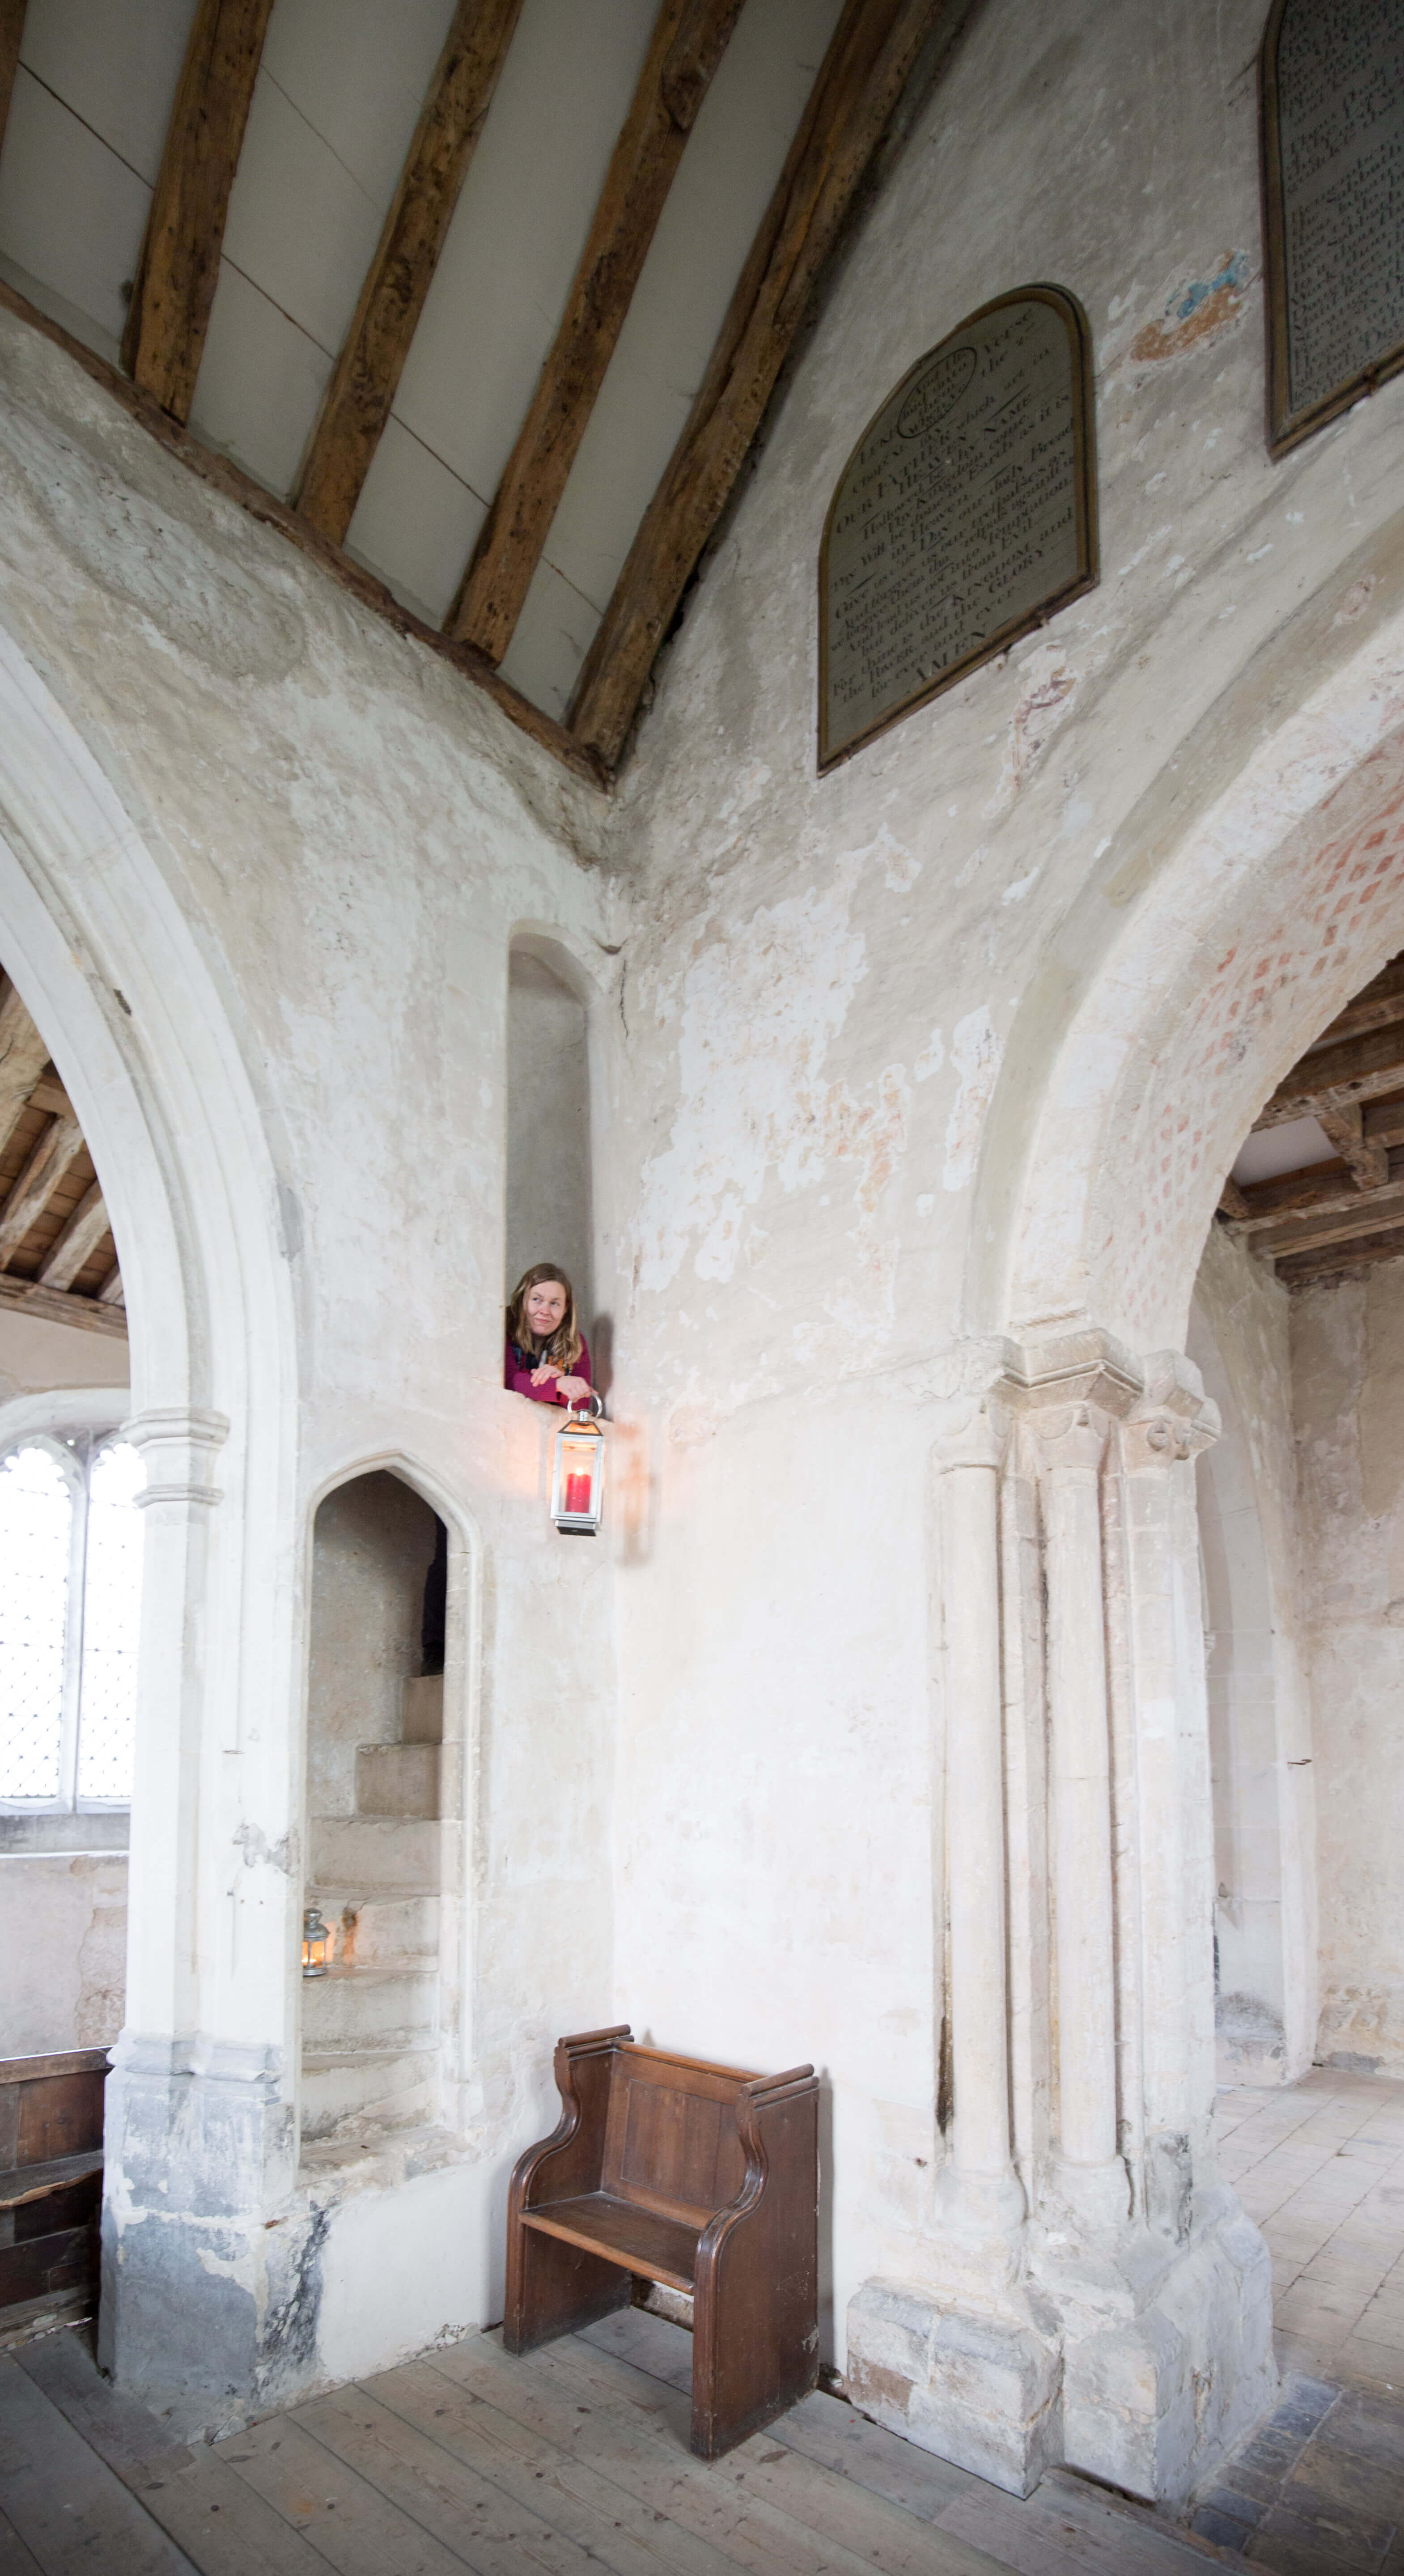 Atop the rood stair in Duxford